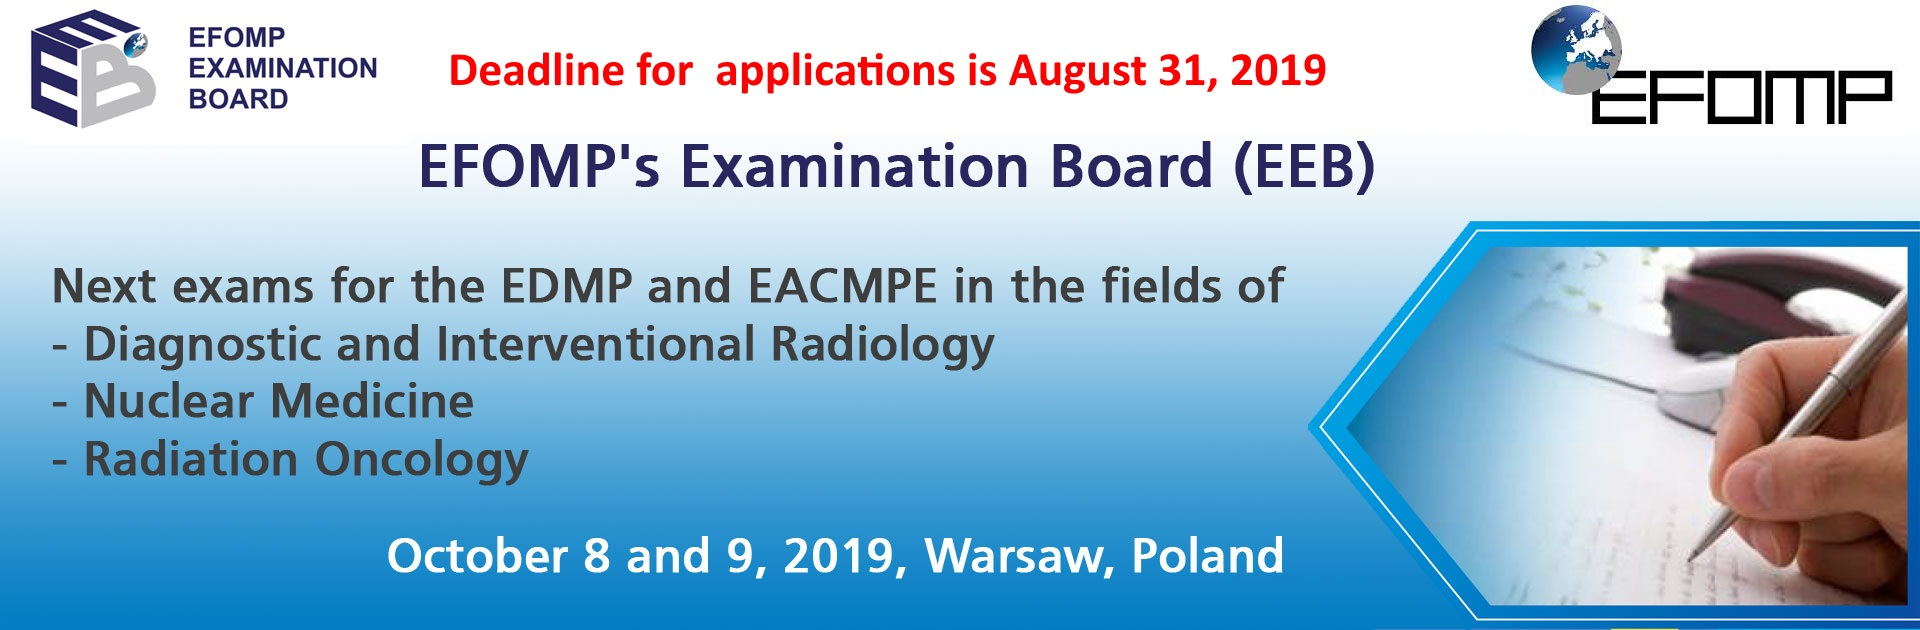 EFOMP's Examination Board (EEB):  Next exams for the EDMP and EACMPE